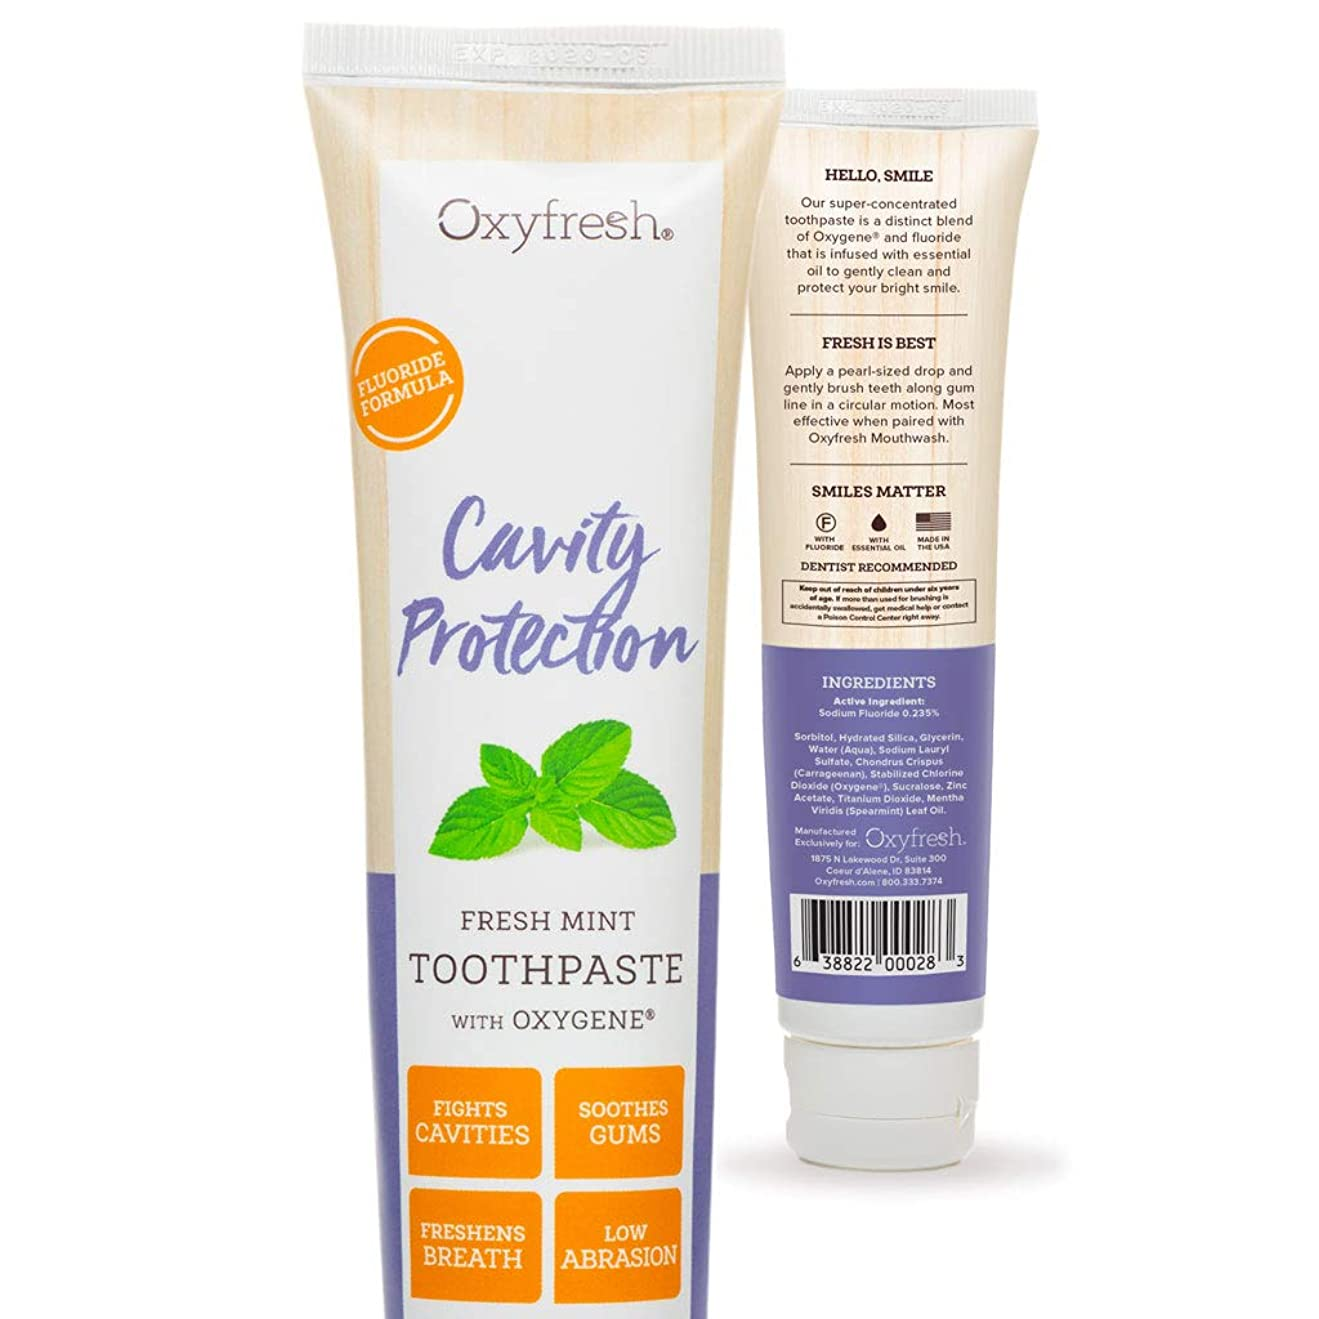 中世のブラウザに沿ってOxyfresh Fluoride Toothpaste: For Long-Lasting Fresh Breath & Healthy Gums. Dentist recommended. No Artificial Colors, Low-Abrasion. by Oxyfresh